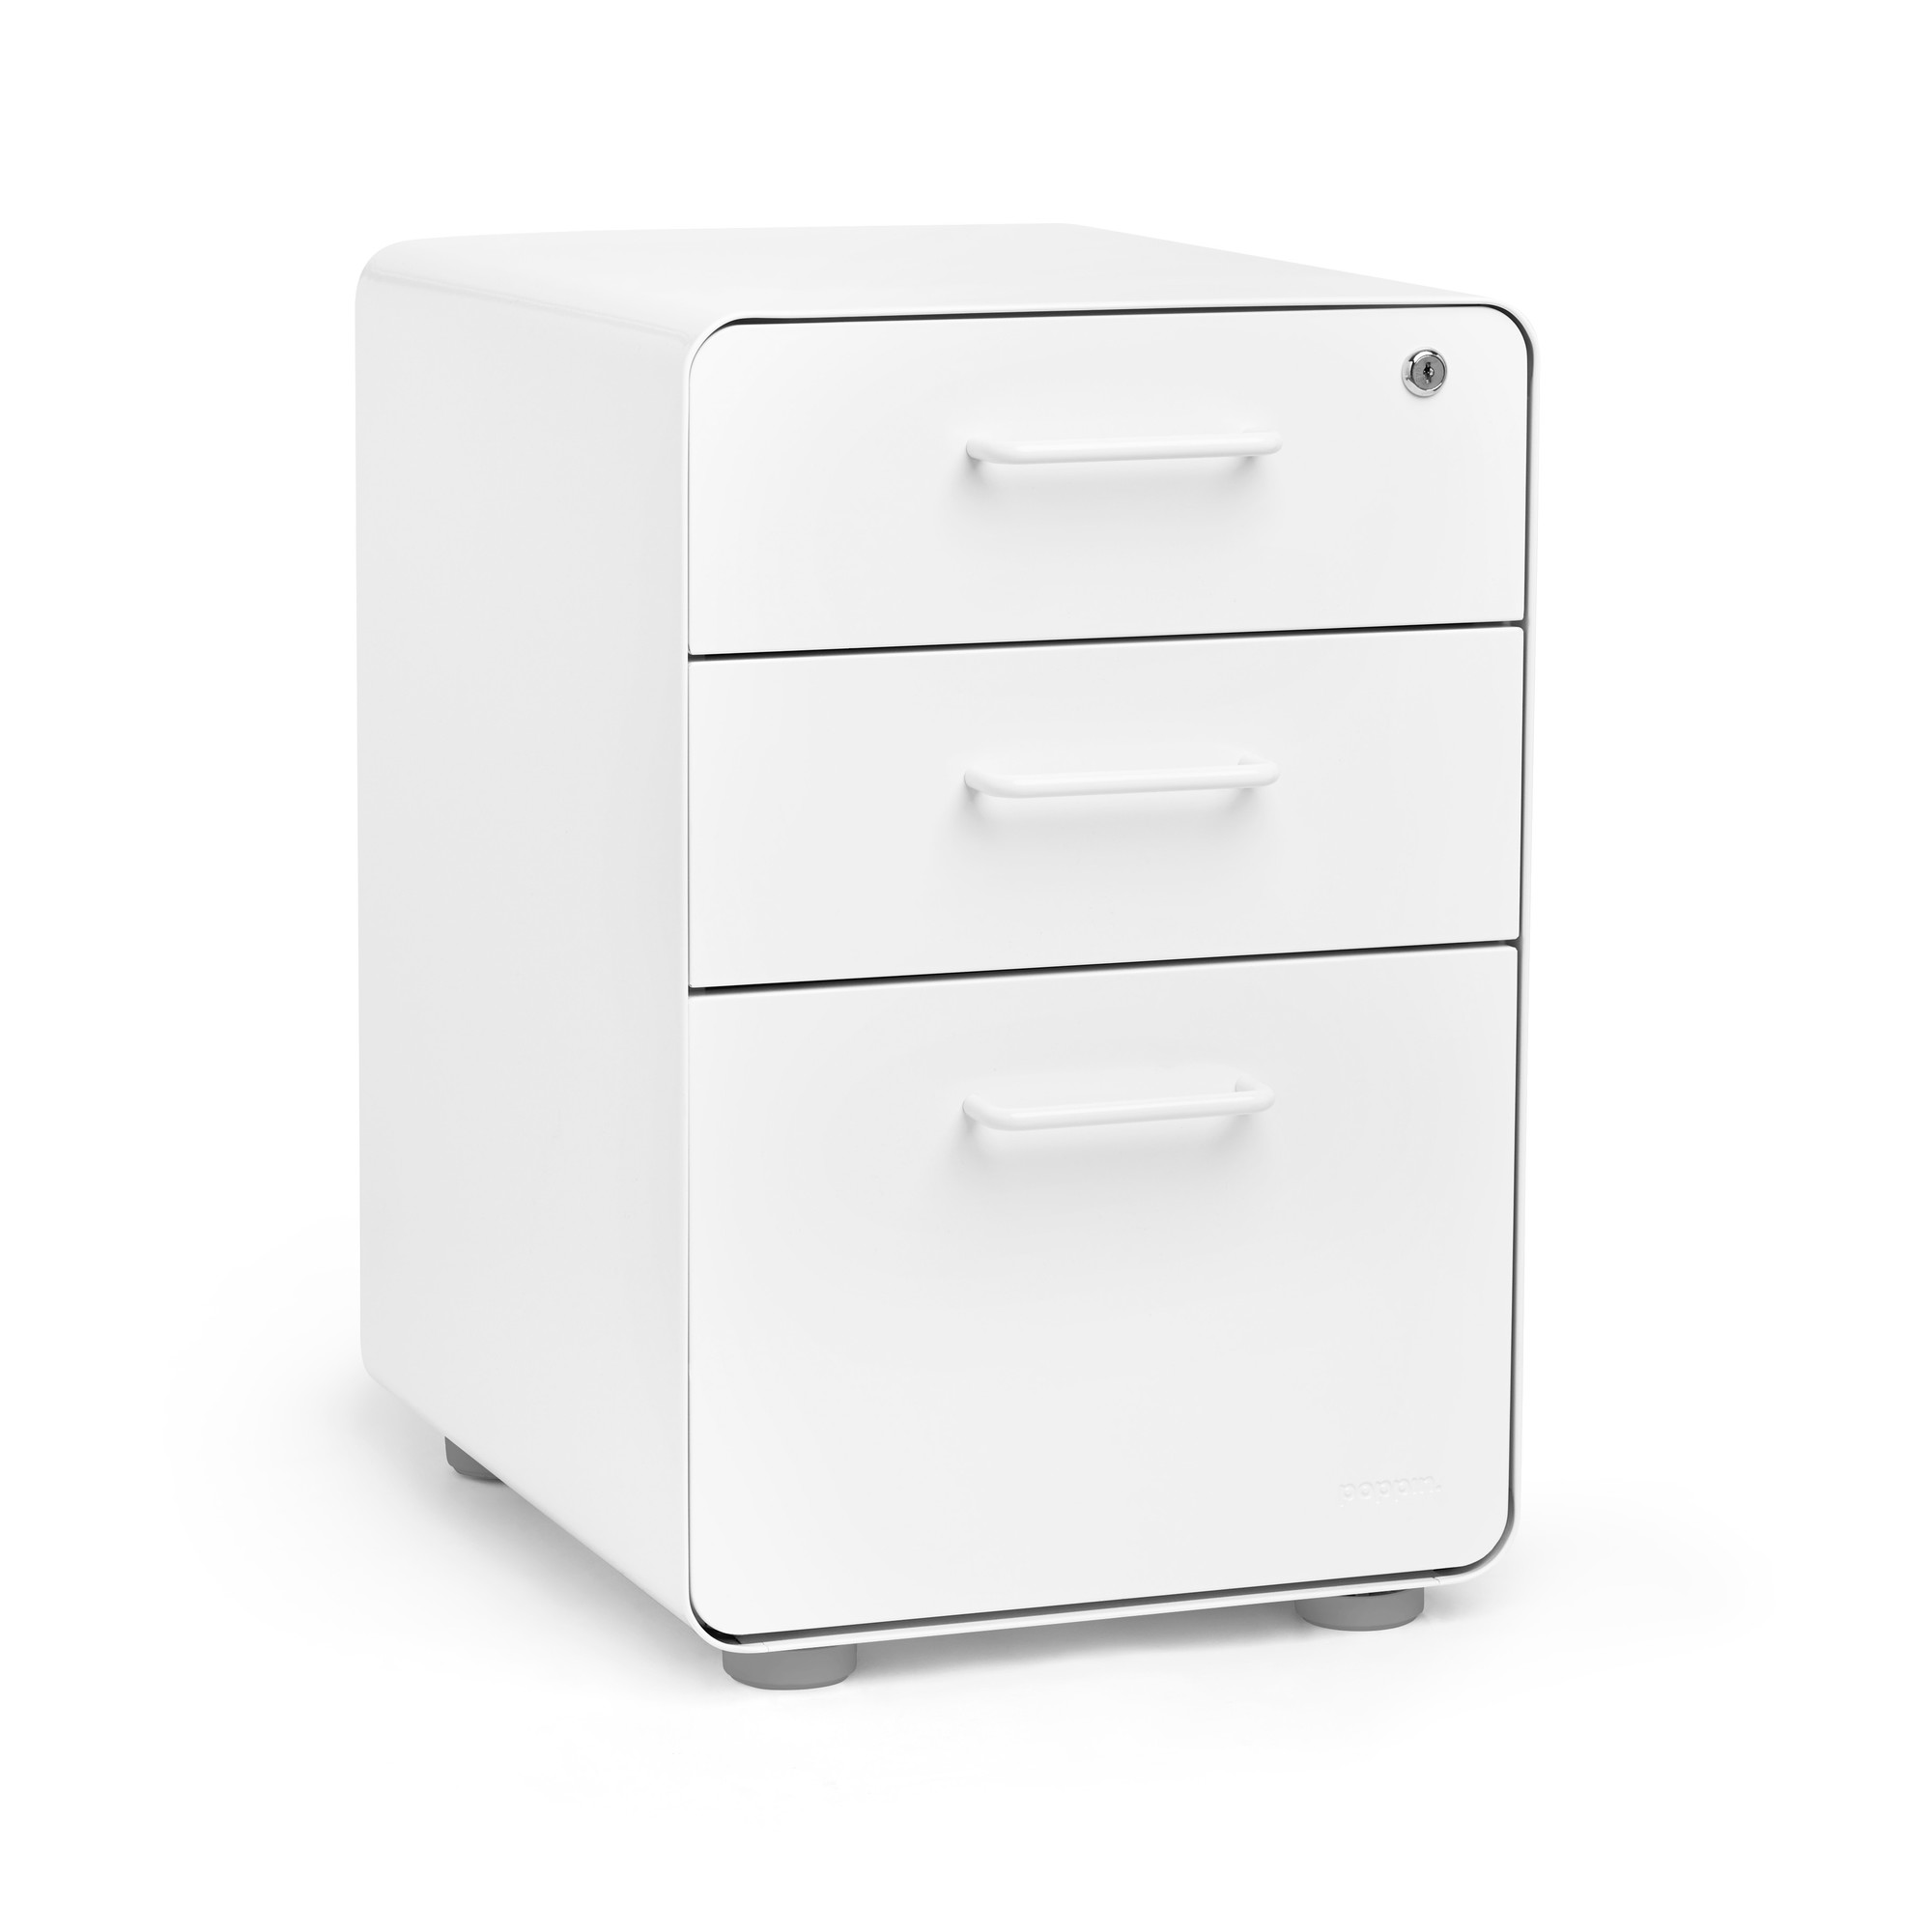 file cabinet. White Stow 3-Drawer File Cabinet,White,hi-res File Cabinet